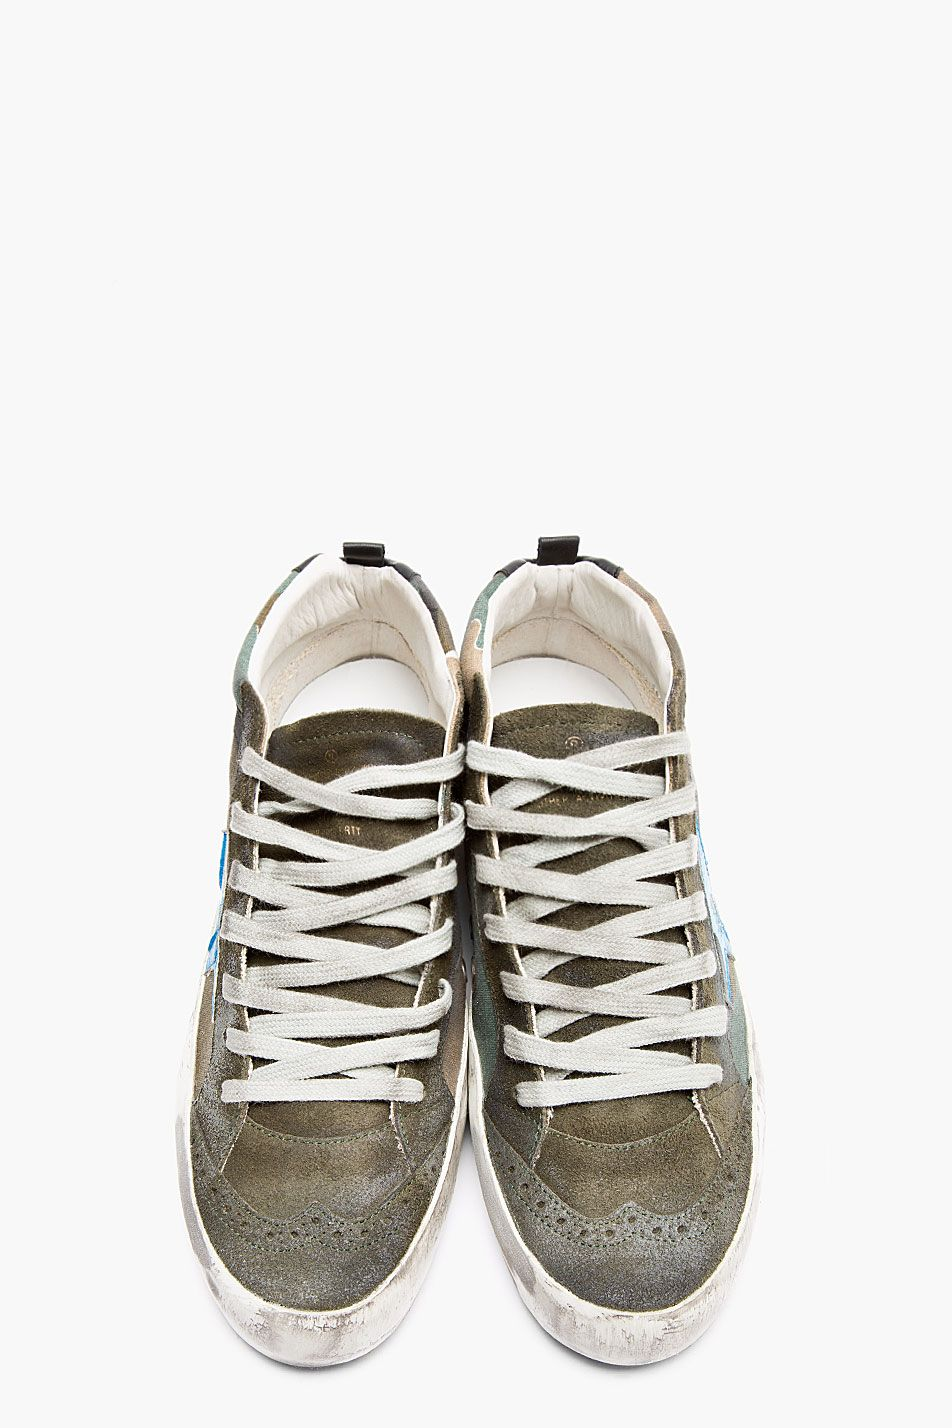 GOLDEN GOOSE Olive Camo Print Canvas STar sneakers